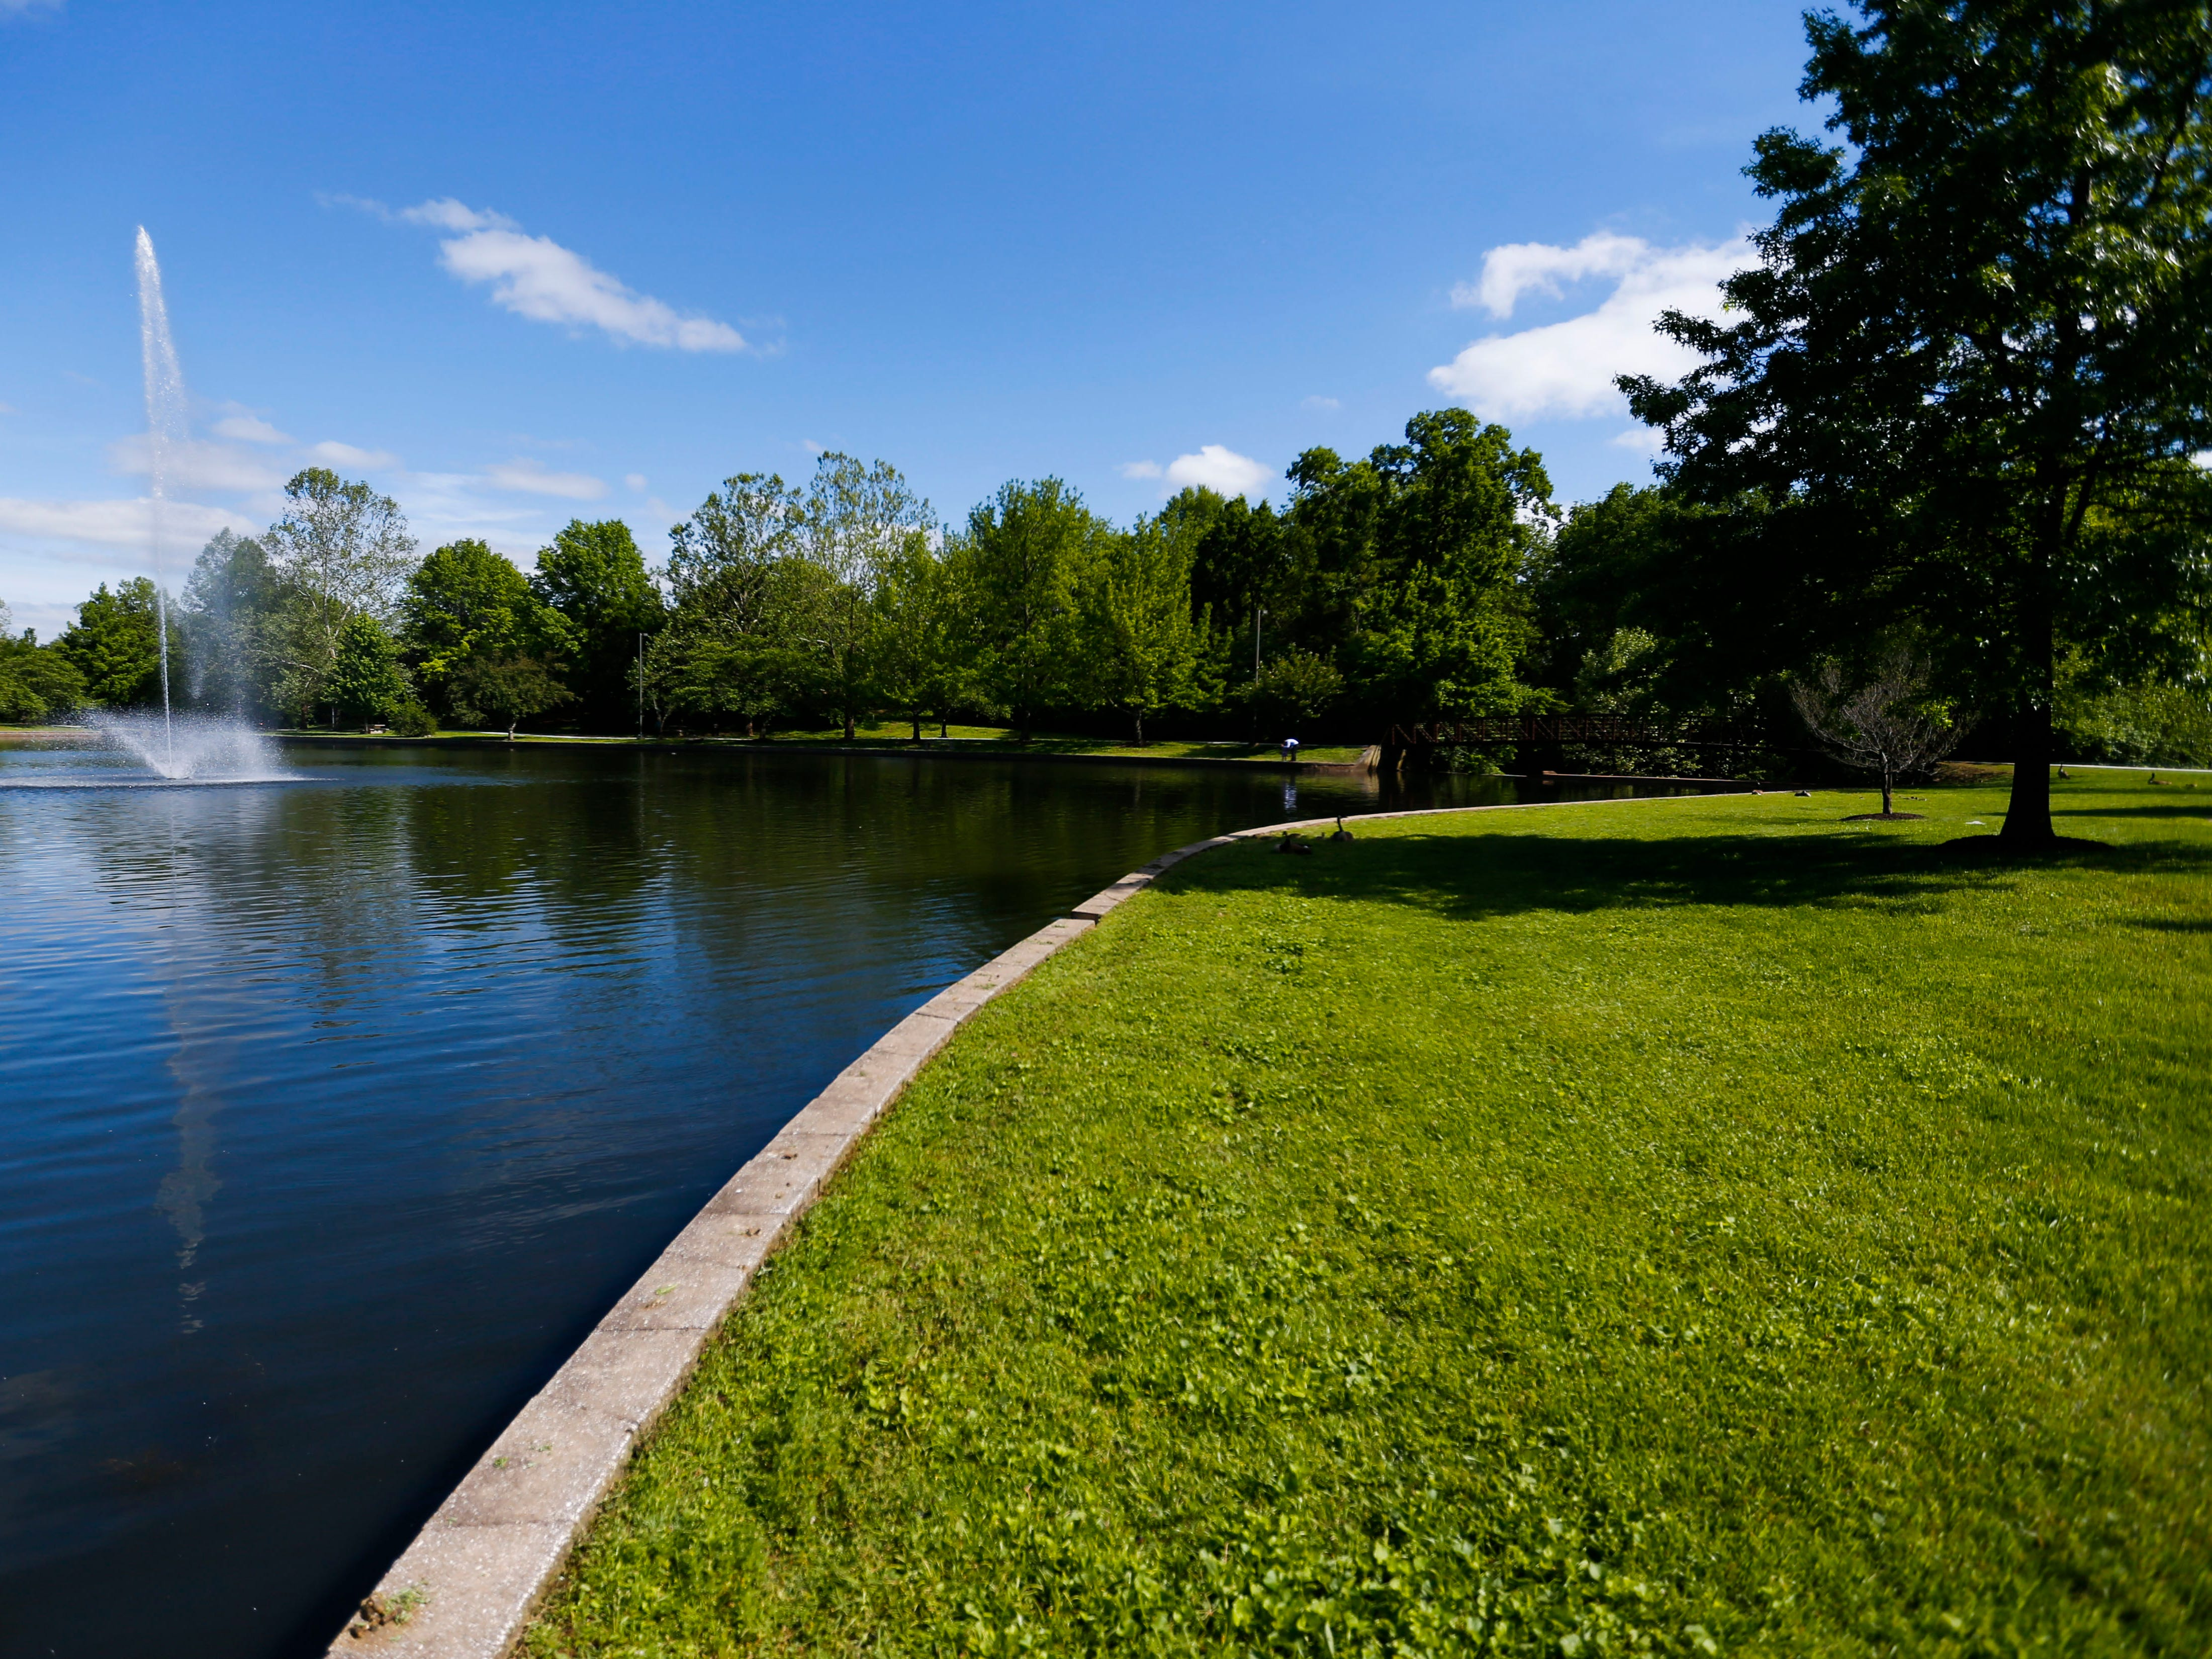 Burrell Behavioral Health dedicated the lake on their campus and walking path around it in honor of Burrell's founder, Dr. Todd Schaible, on Friday, May 10, 2019.